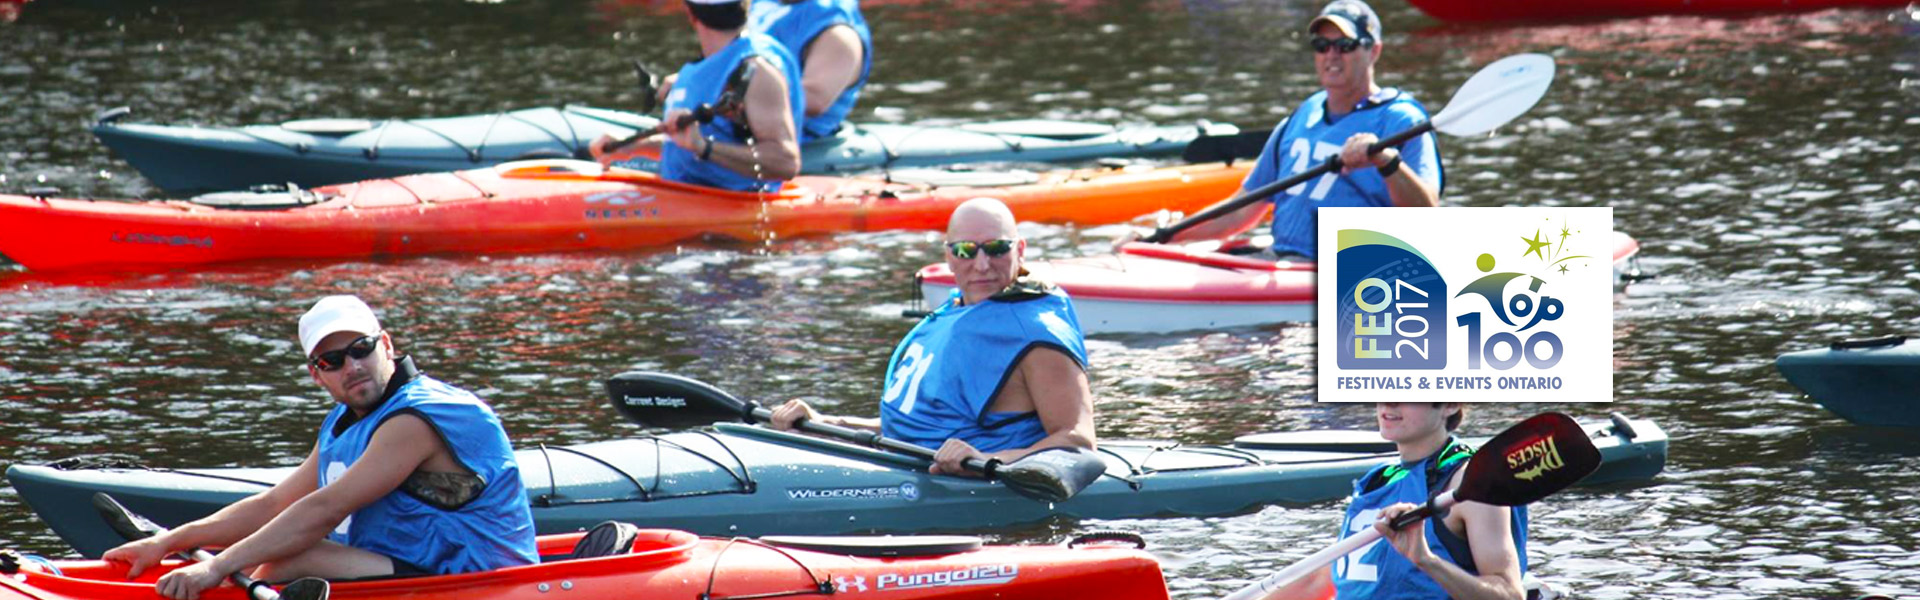 <h2>August 24, 25 and 26 2018</h2> 9th Annual Great Canadian Kayak Challenge and Festival!